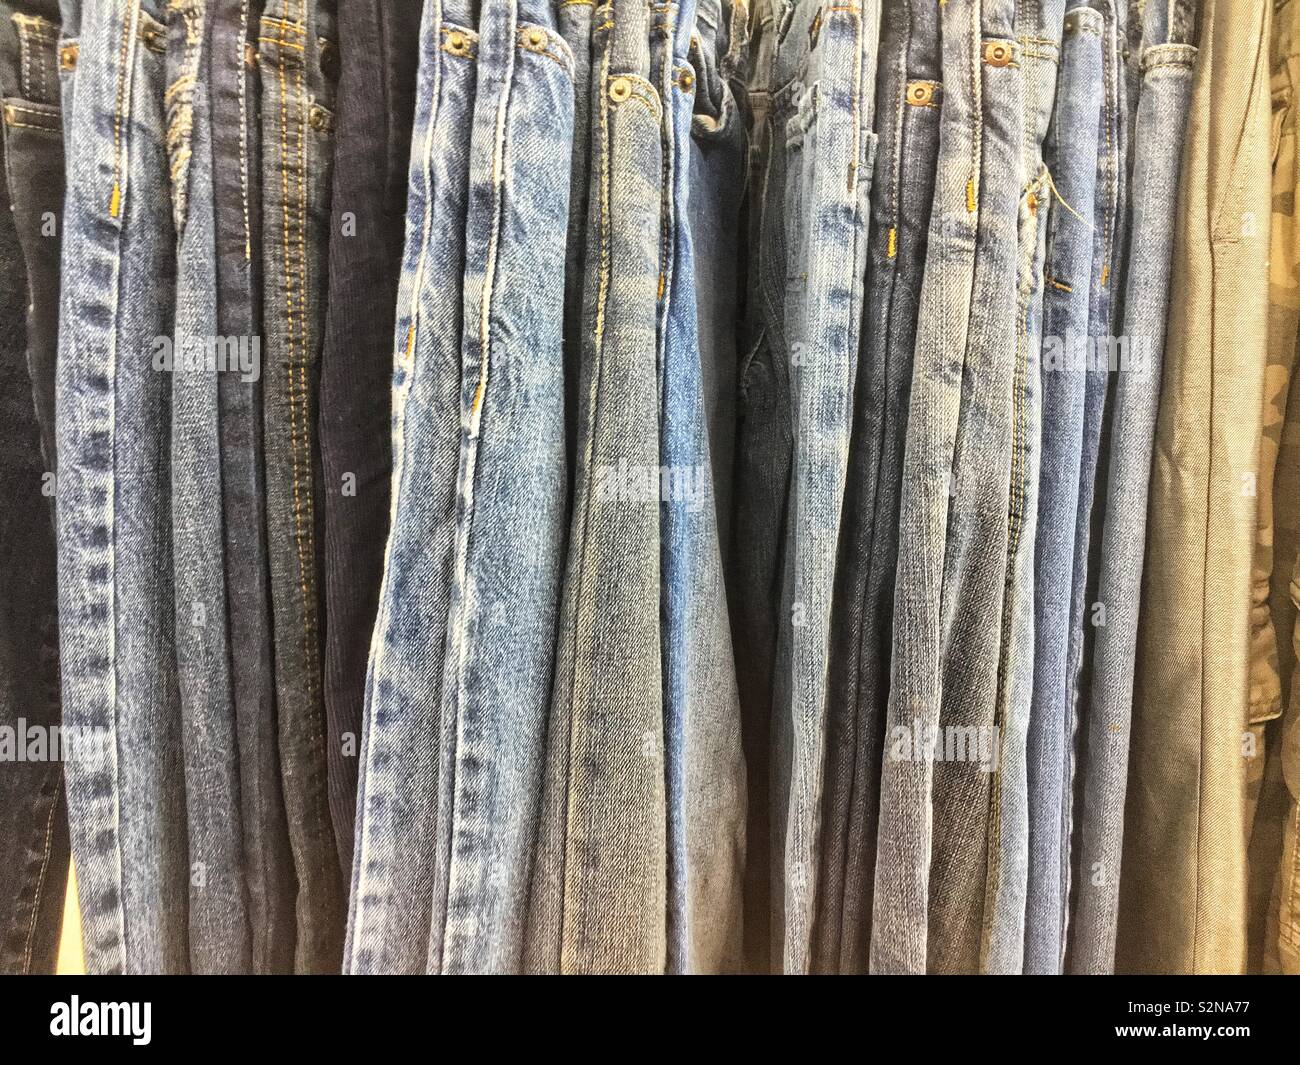 61f19c0b5e A variety of fashionable jeans and pants hanging on a rod Stock ...